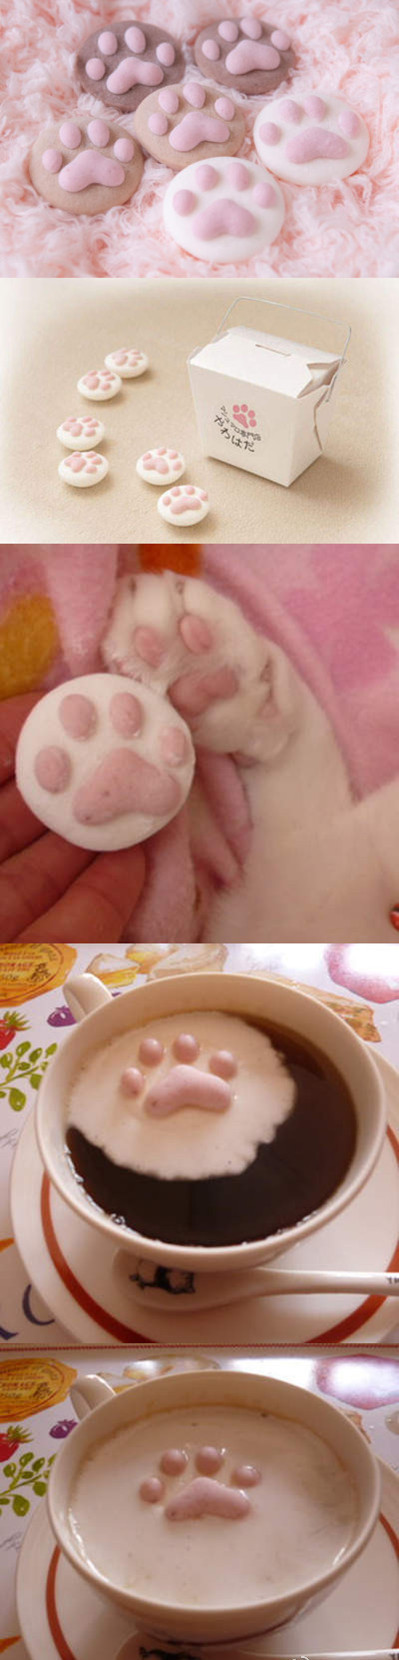 These are marshmallows!!  Too CUTE!